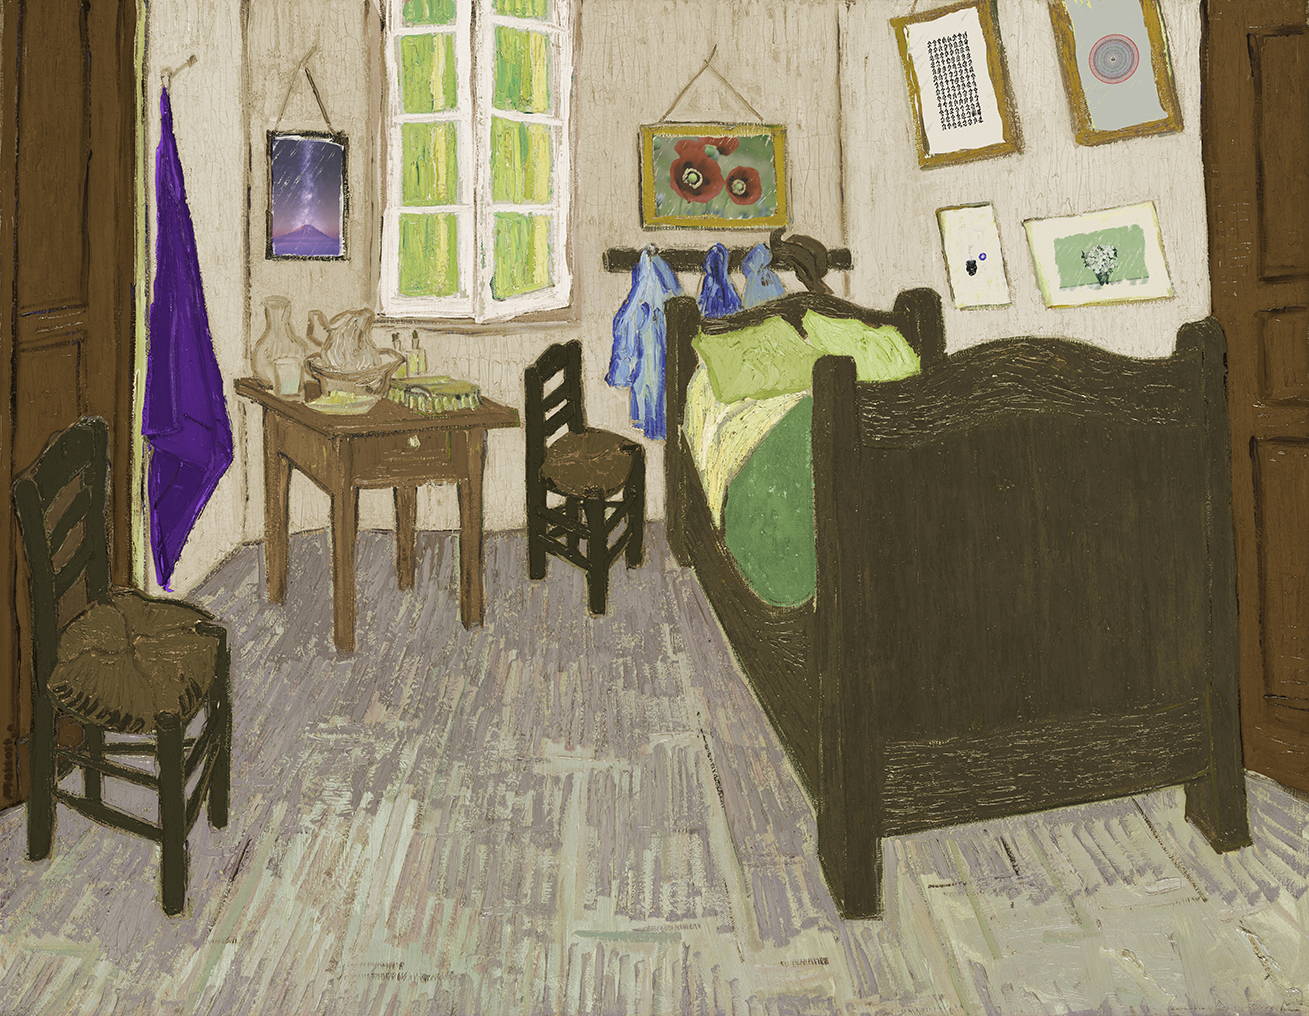 a play and an after of van Gogh's bedroom with a white window and wooden floor featuring my paintings and designs on the wall and the bedroom a fusion of my bedroom at my dad's and mom's places